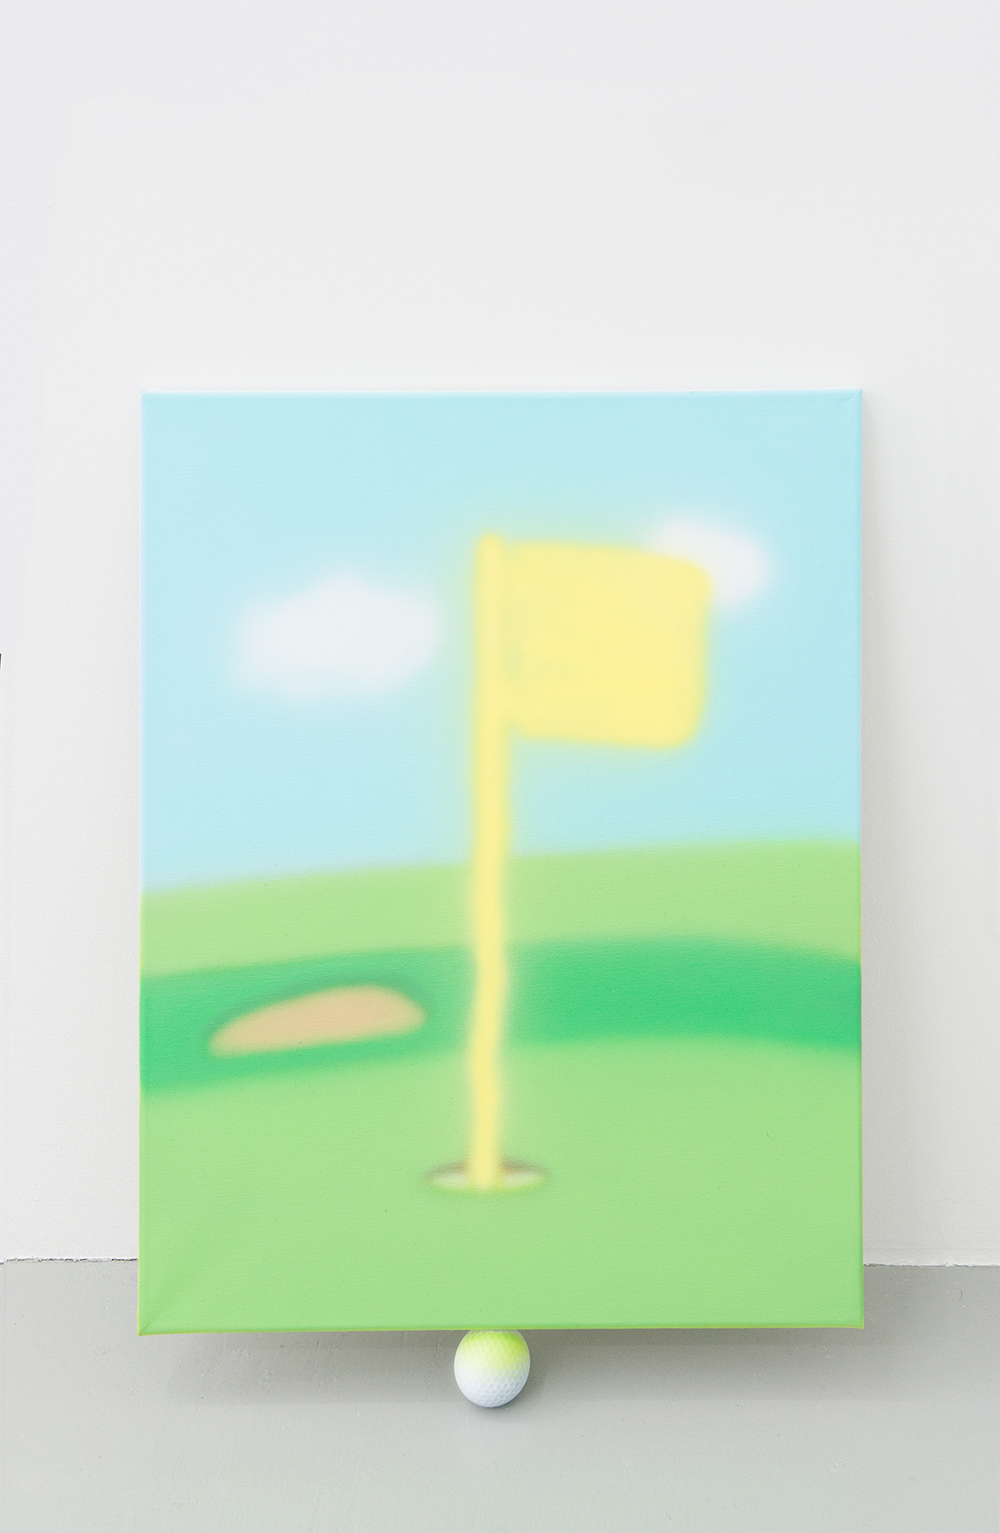 Jonny Paul Gillette goal on golf ball, 2015 Acrylic polymer on canvas, golf ball  2015